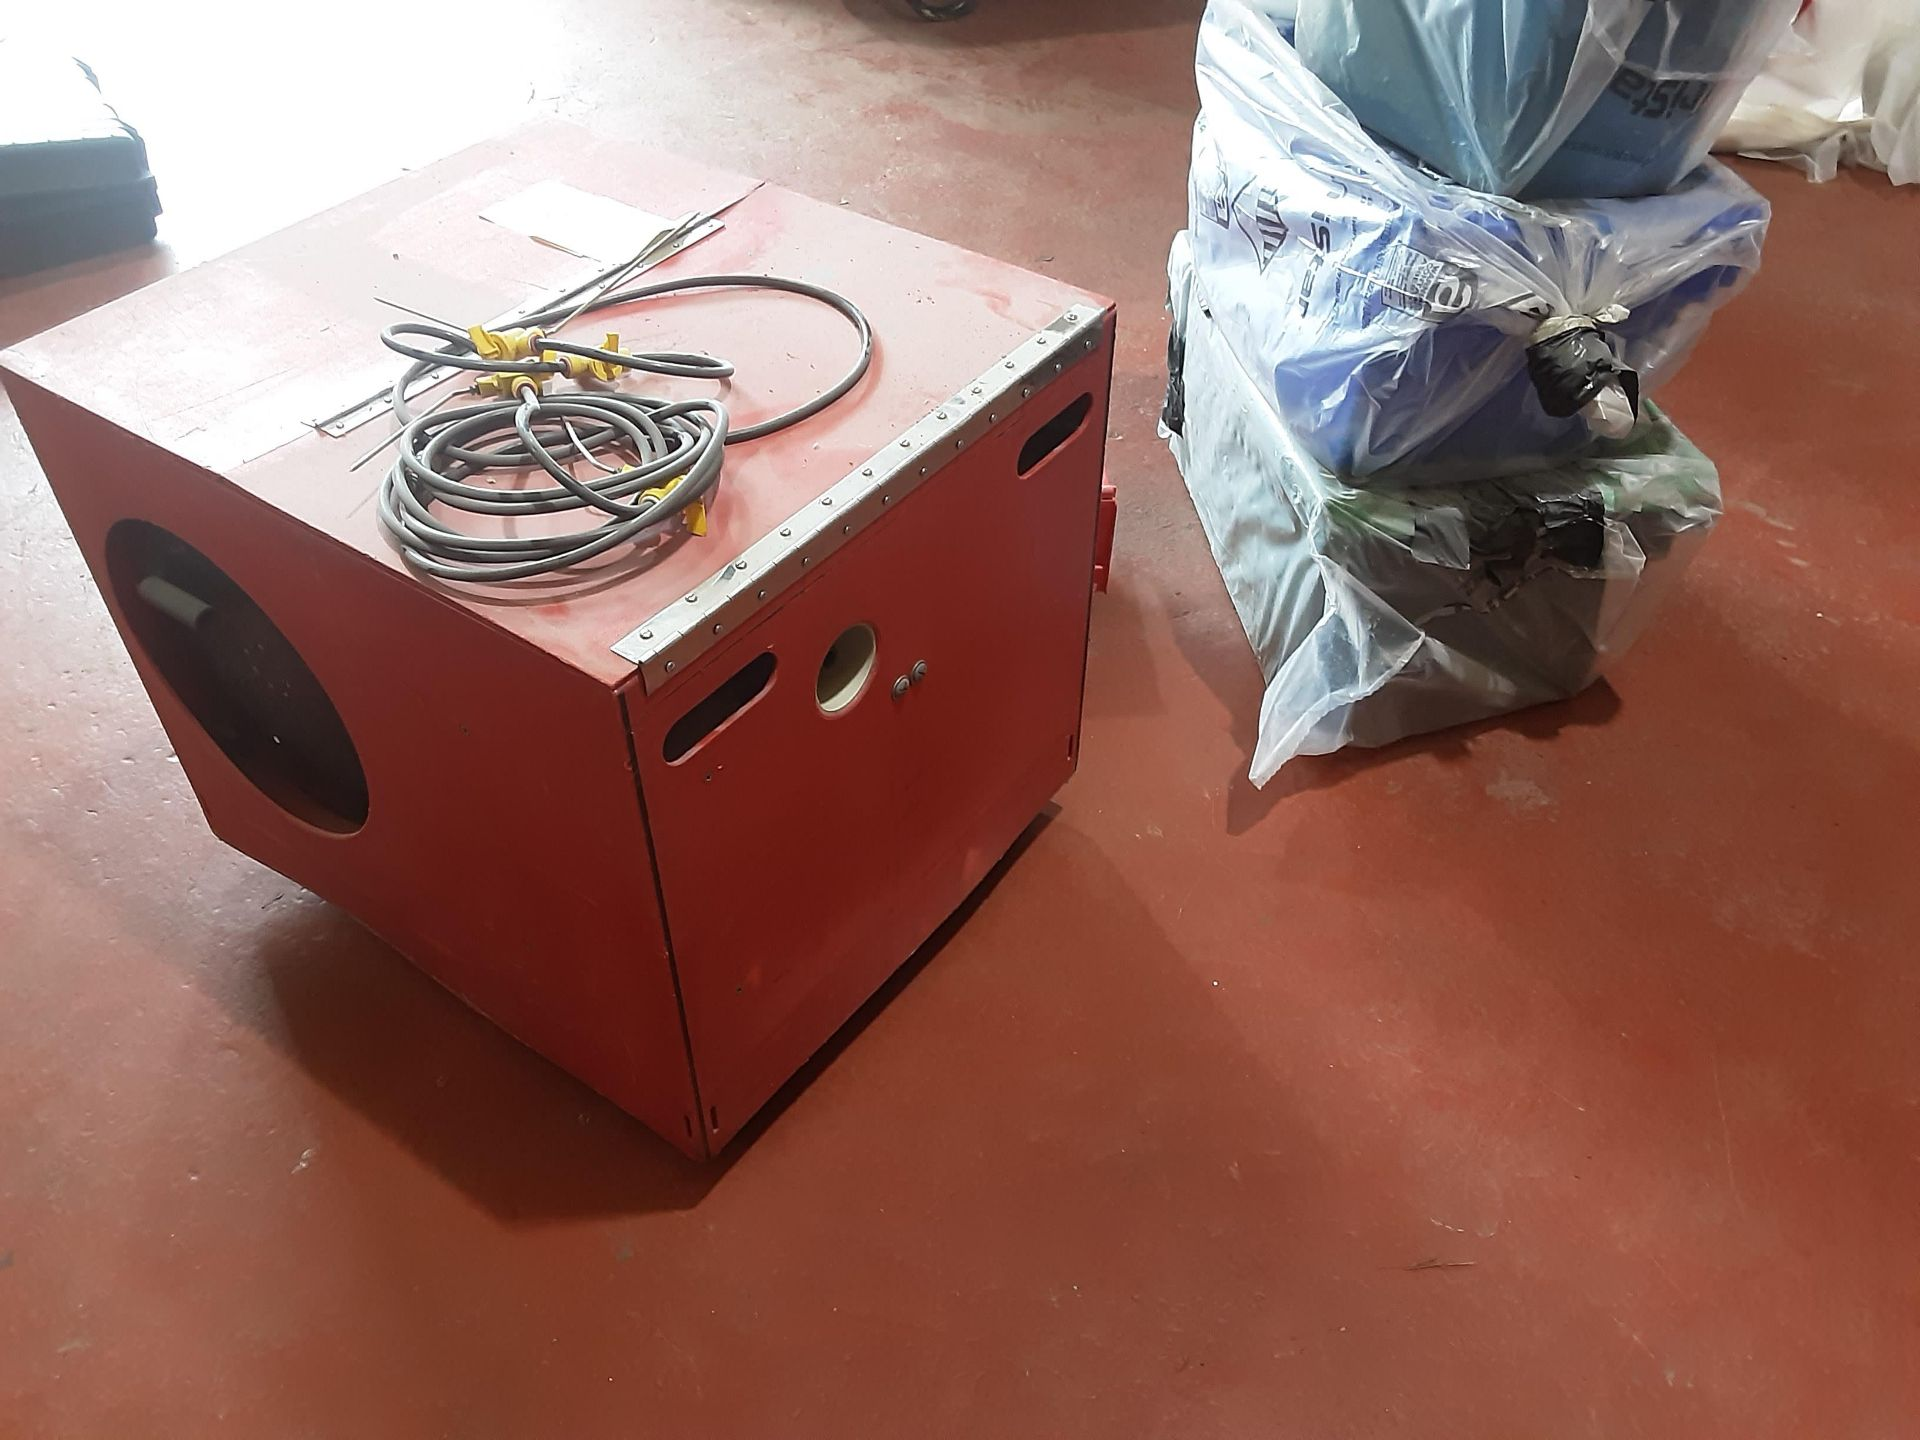 The Red Box Water Injection Machine & Accessories, Serial No. 6062, (2014) - Image 2 of 10